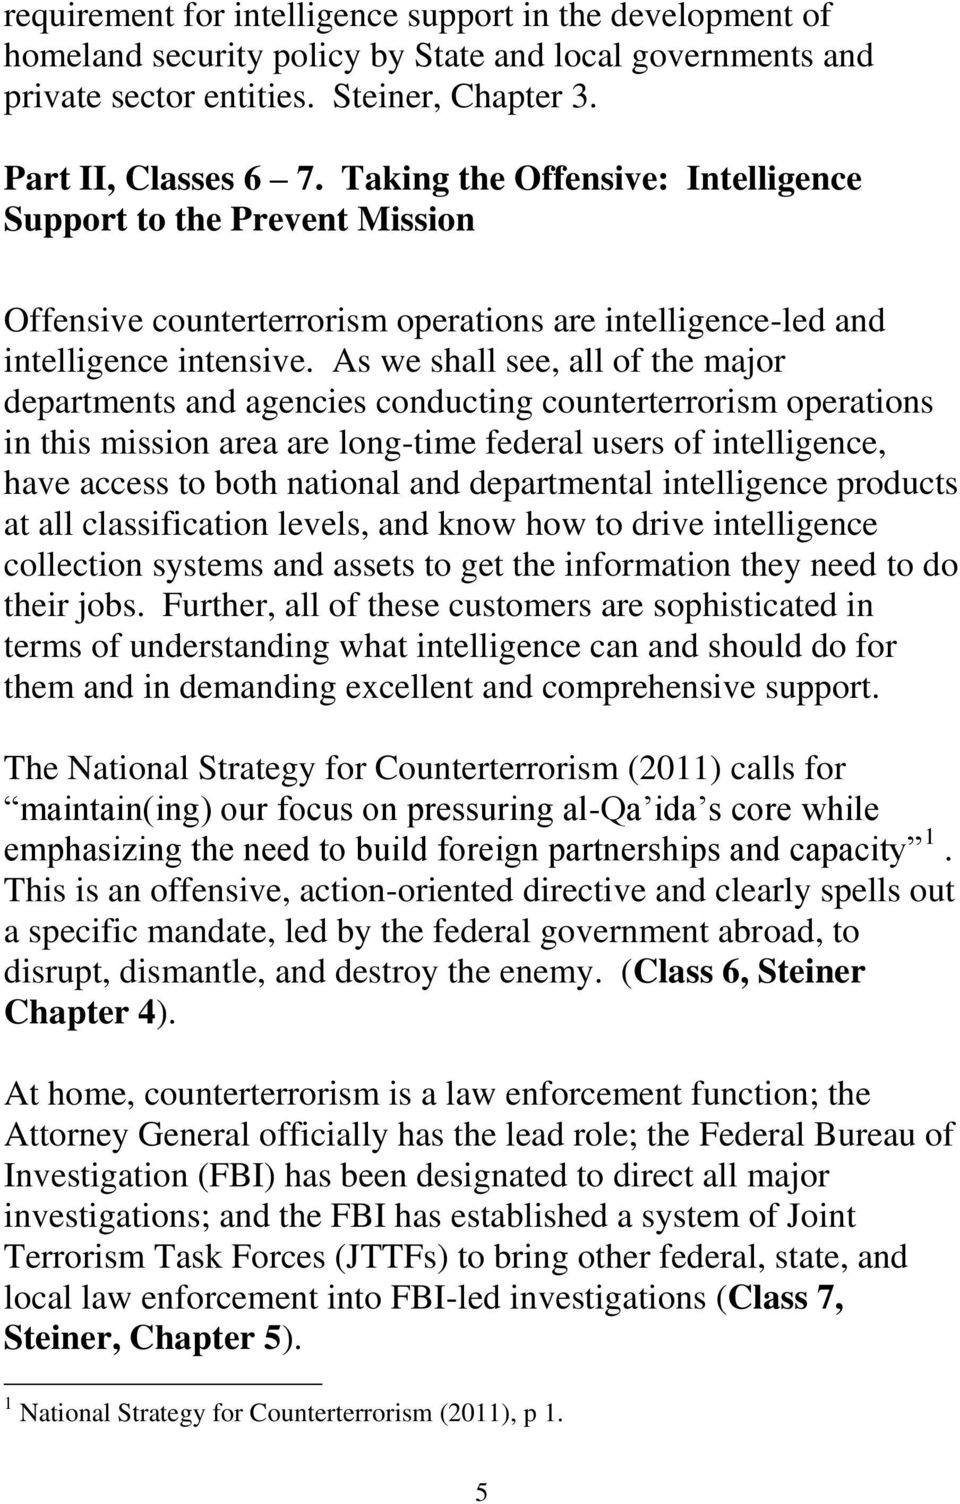 As we shall see, all of the major departments and agencies conducting counterterrorism operations in this mission area are long-time federal users of intelligence, have access to both national and